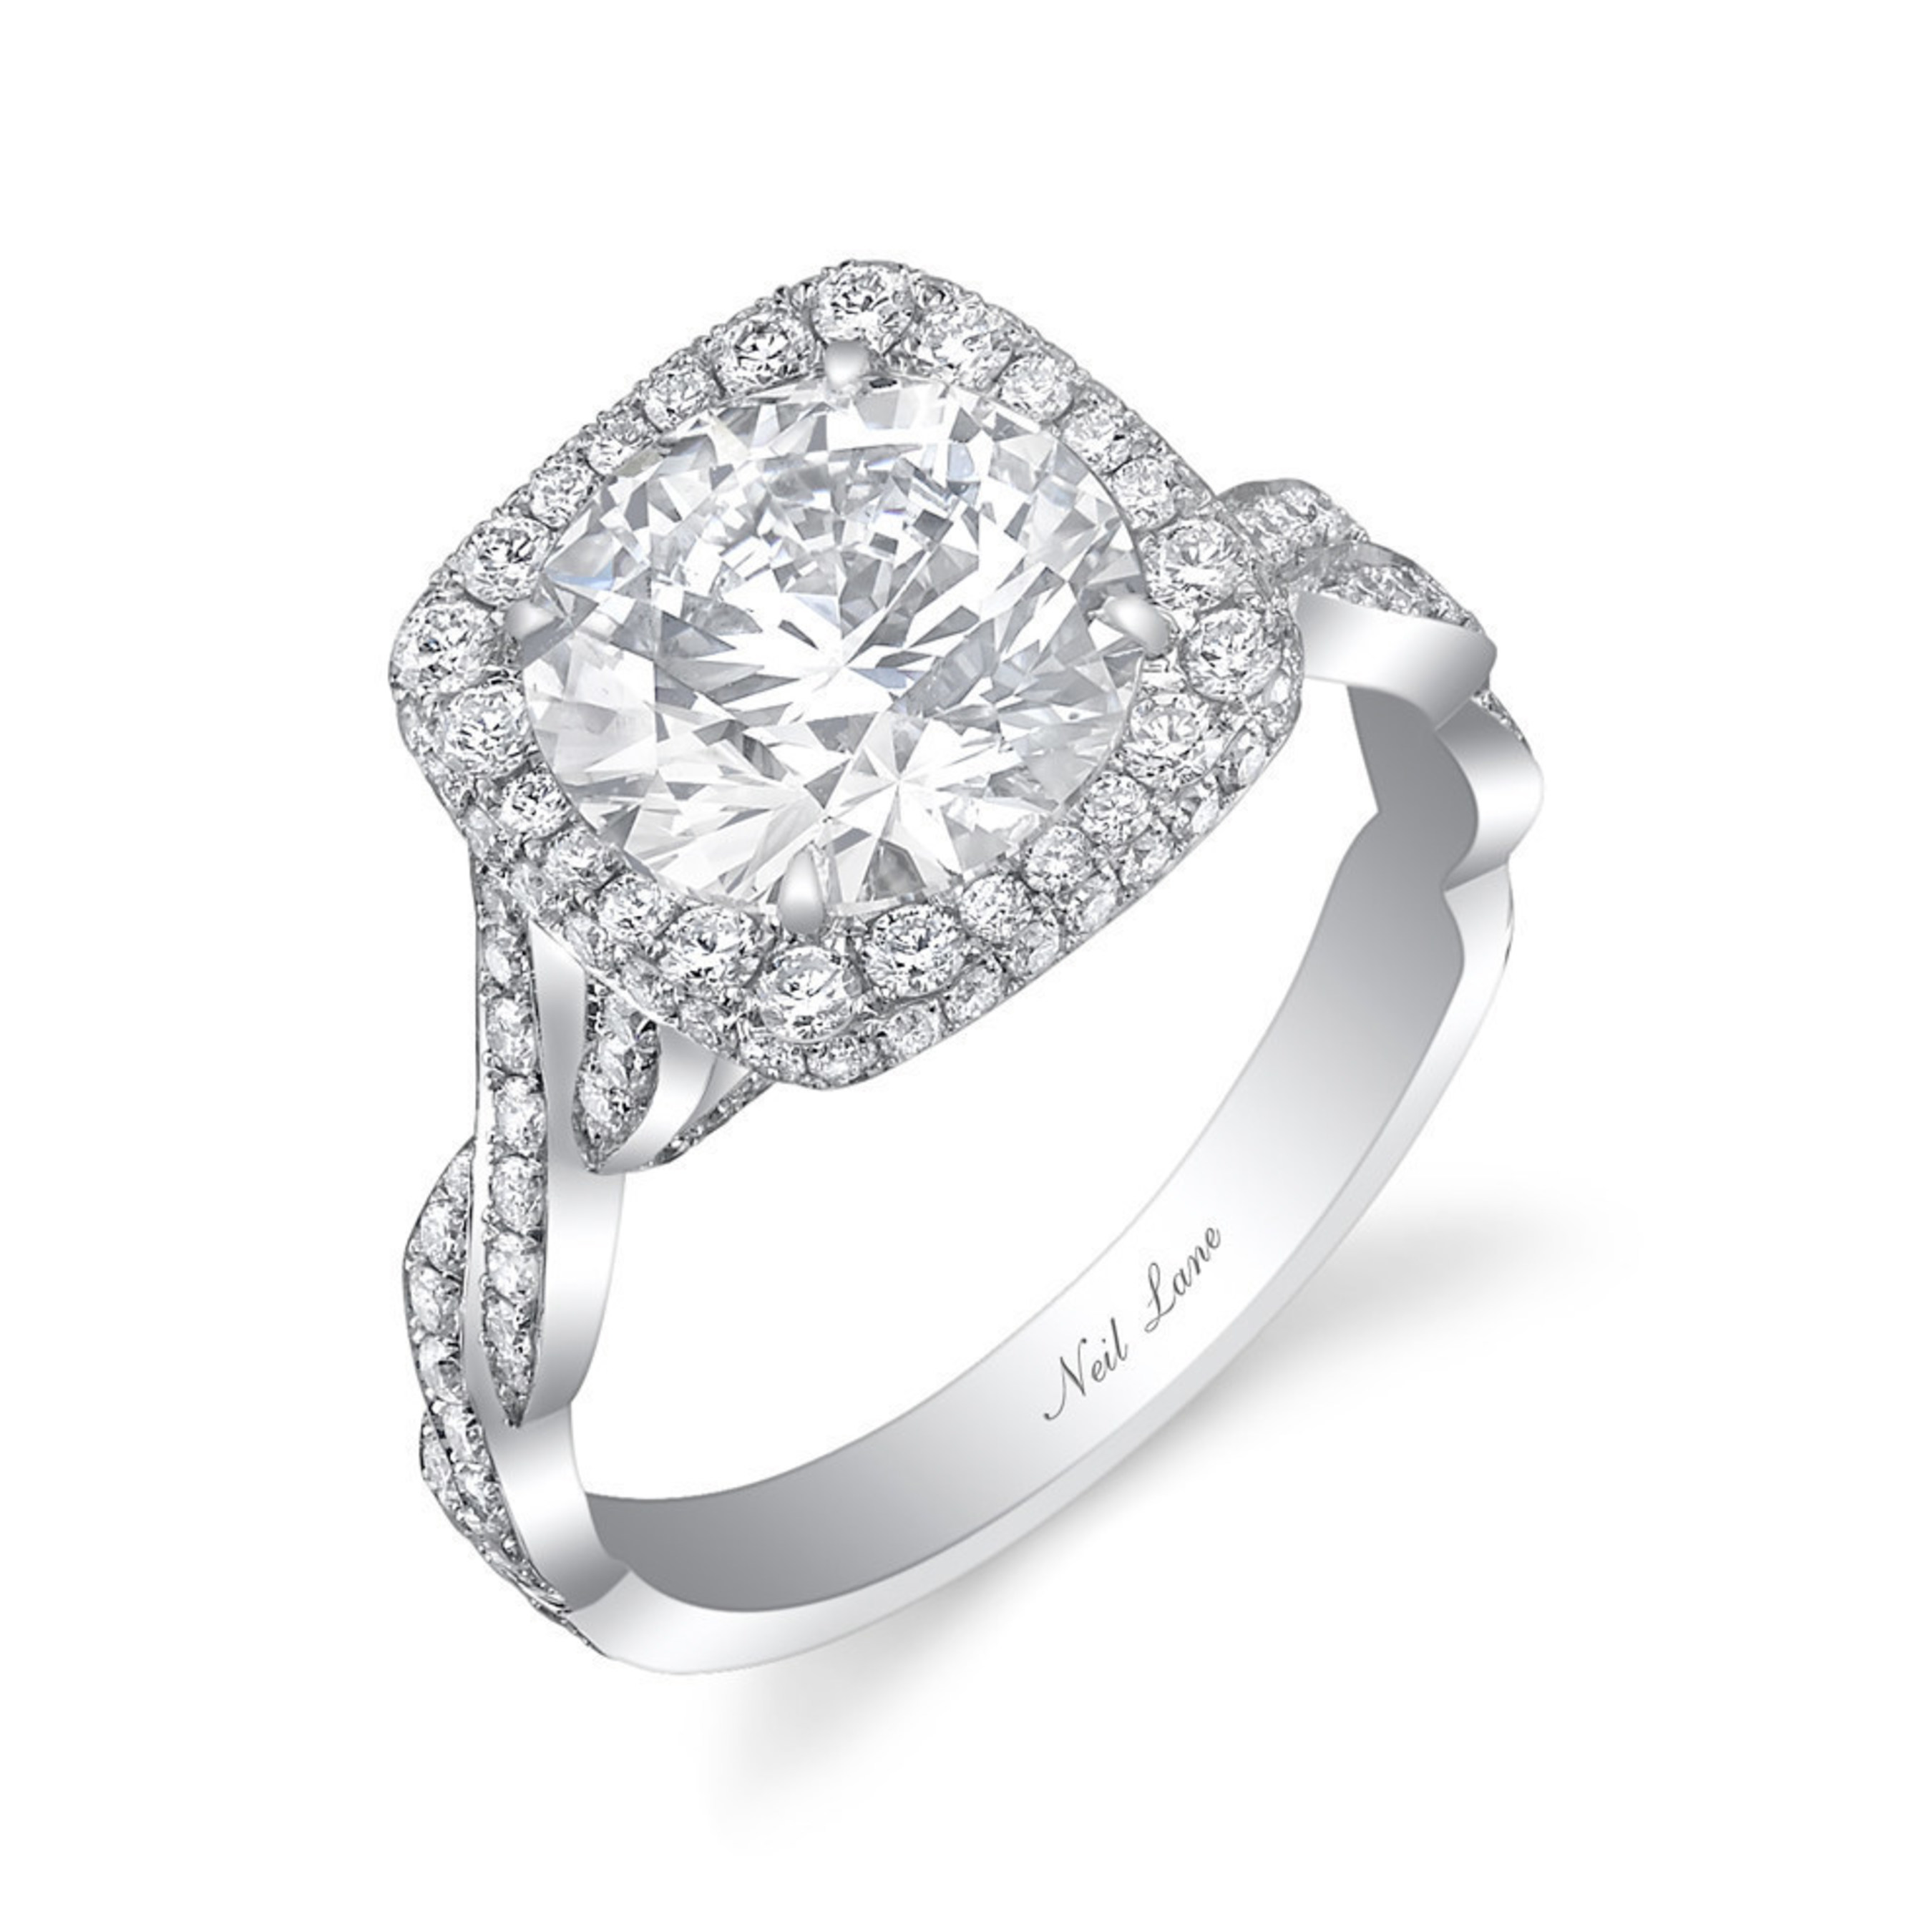 The platinum diamond ring is set with a central round brilliant cut diamond surrounded by 160 smaller diamonds to an entwined diamond band. Approximate total diamond weight is 3.5 carats. Hand crafted, signed and designed by Neil Lane.